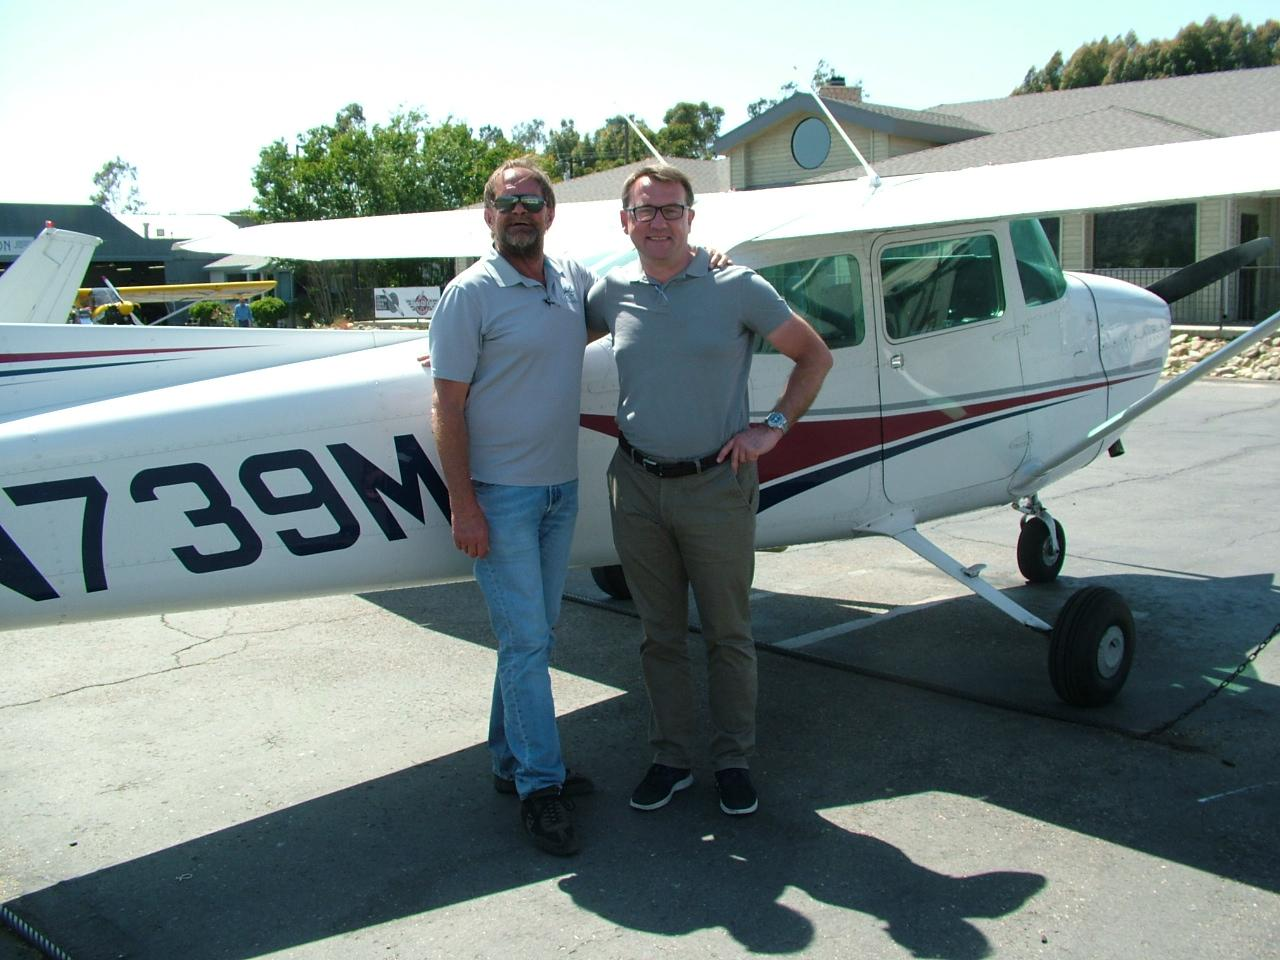 Piotr Dlugiewicz - Certified Flight Instructor